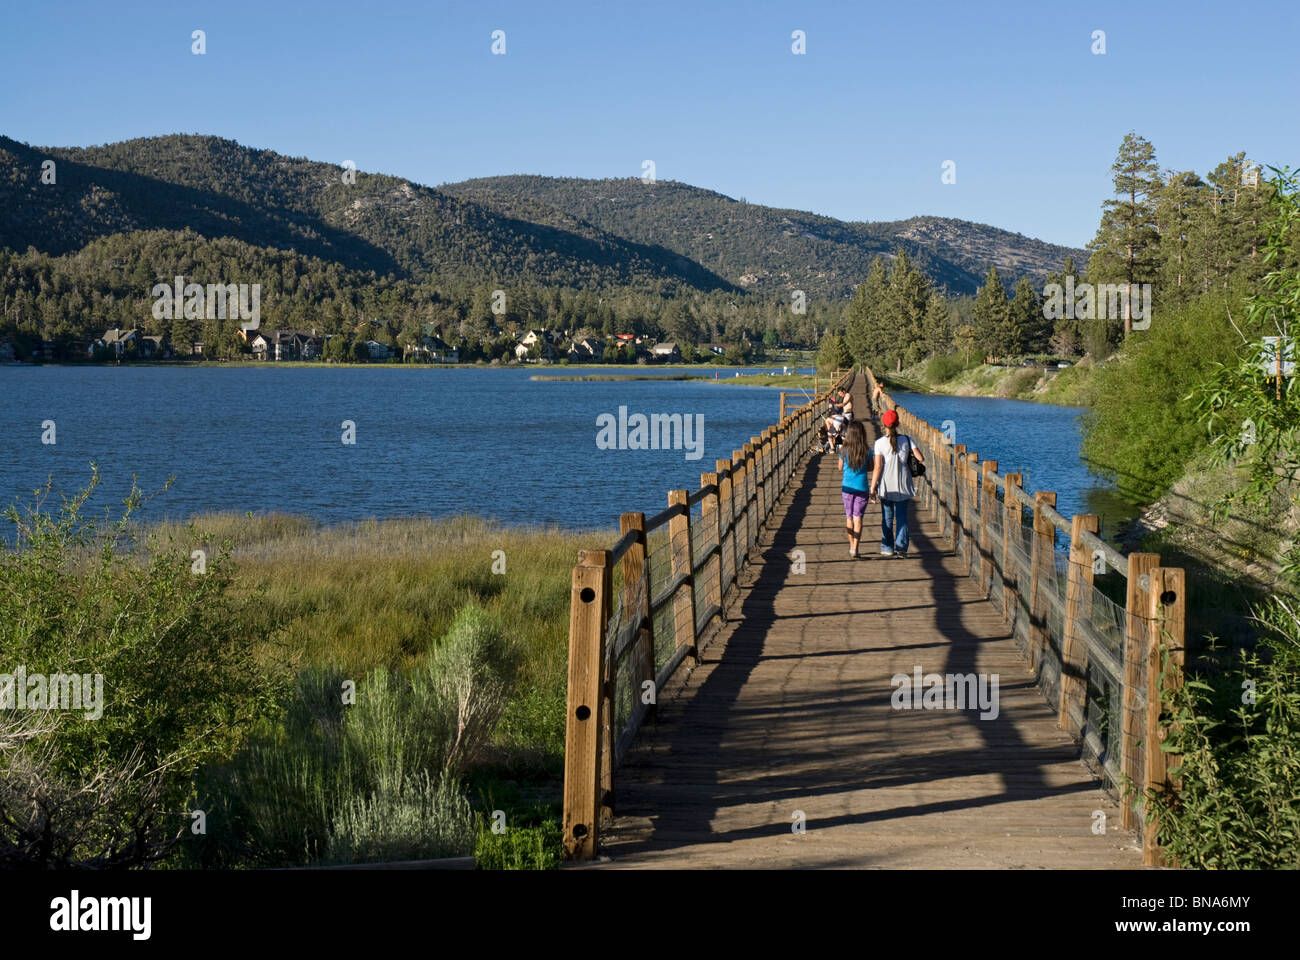 The boardwalk at Stanfield Marsh Waterfowl Preserve, Big Bear Lake, California, USA - Stock Image